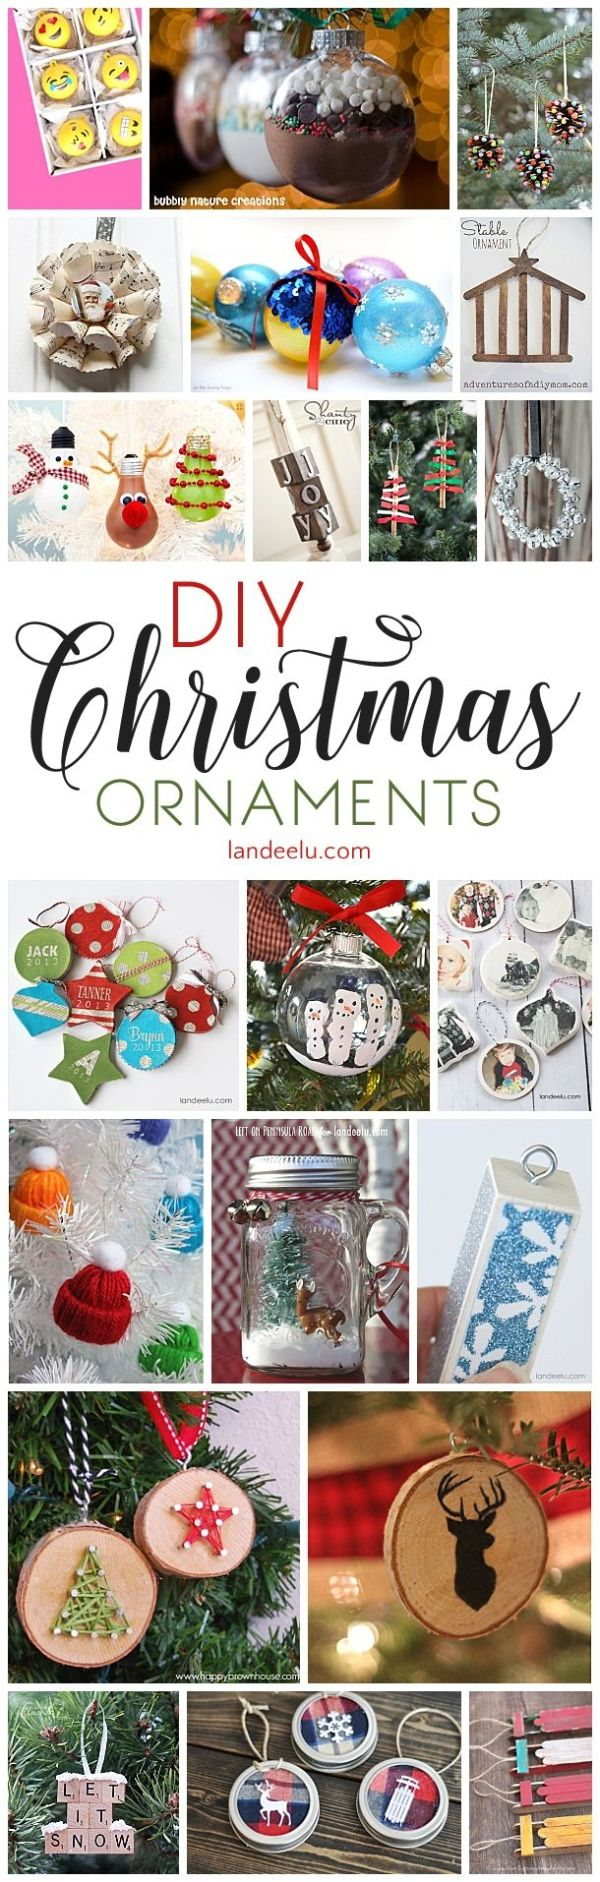 Diy christmas ornaments to make for a festive do it yourself holiday diy christmas ornaments to make for a festive do it yourself holiday cheap easy solutioingenieria Gallery